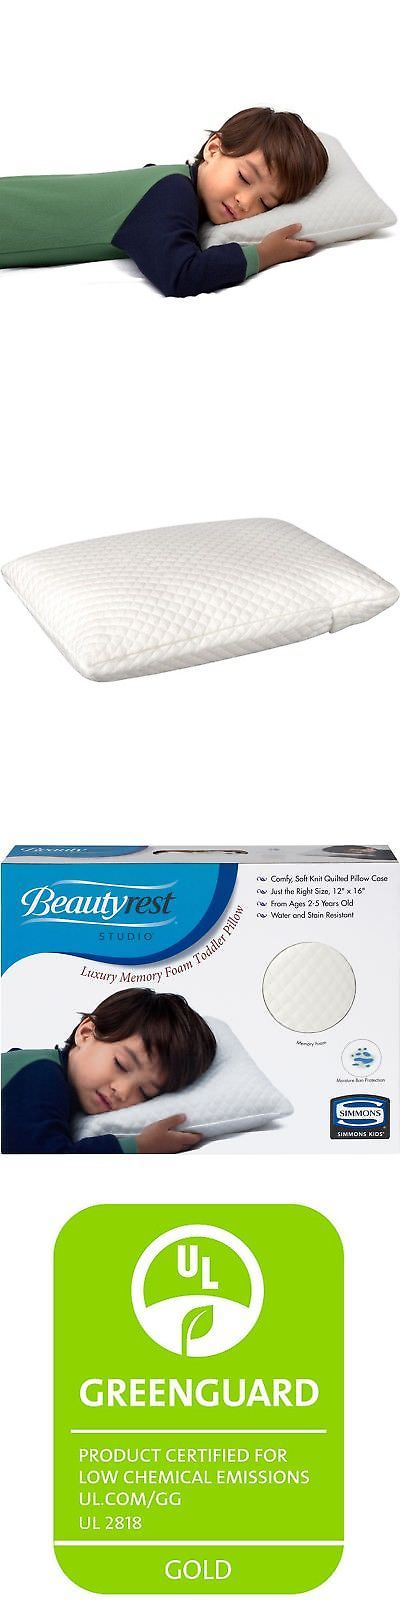 shipping free bedding contour memory overstock product foam today beautyrest pillow bath